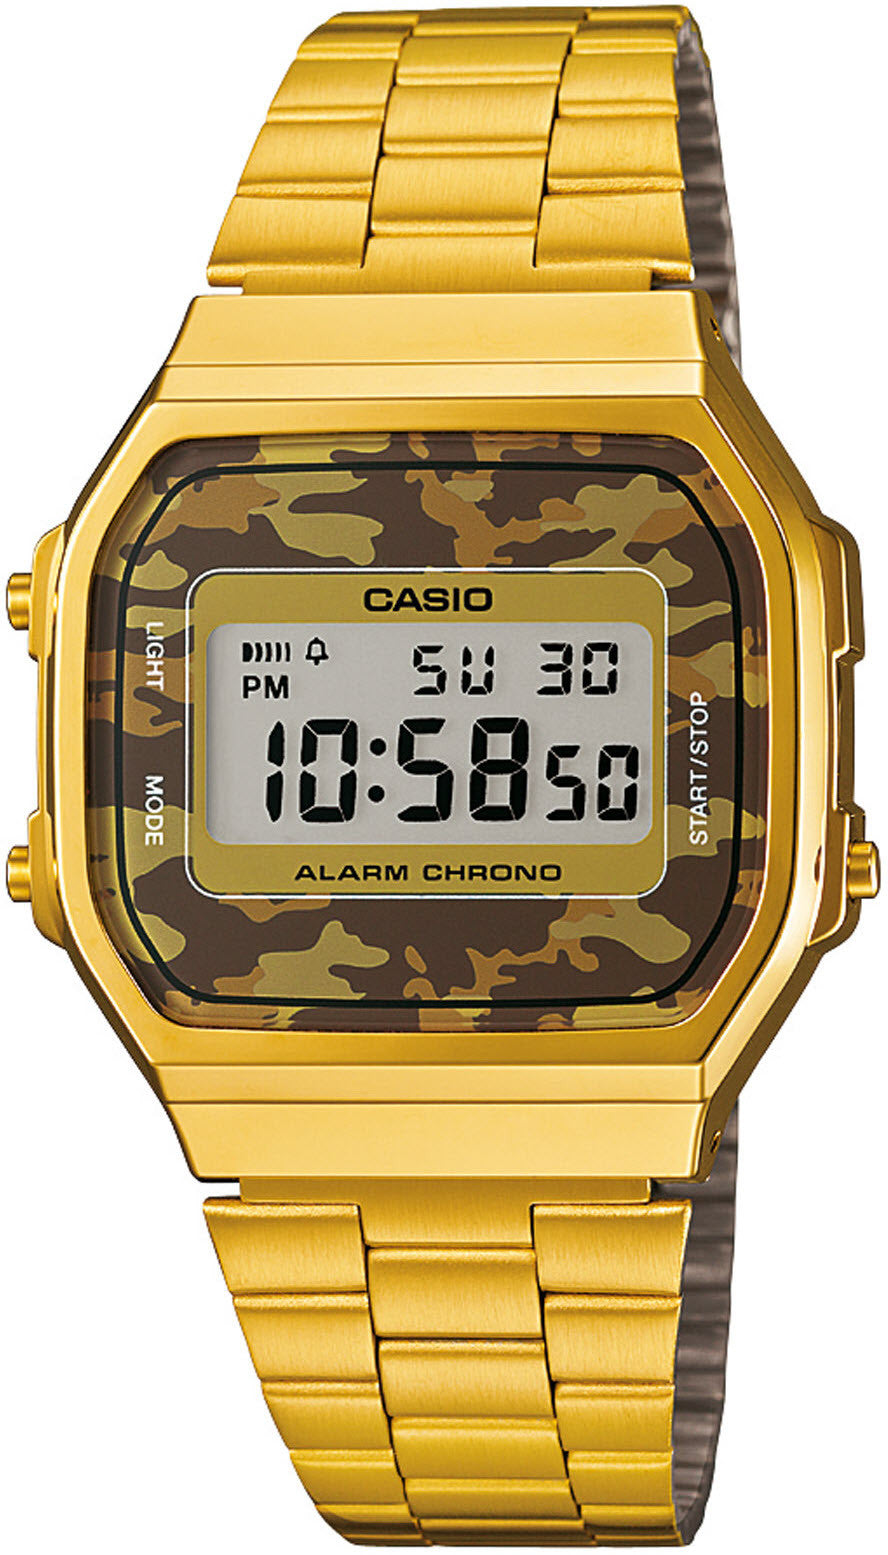 Casio Watch Classic Alarm